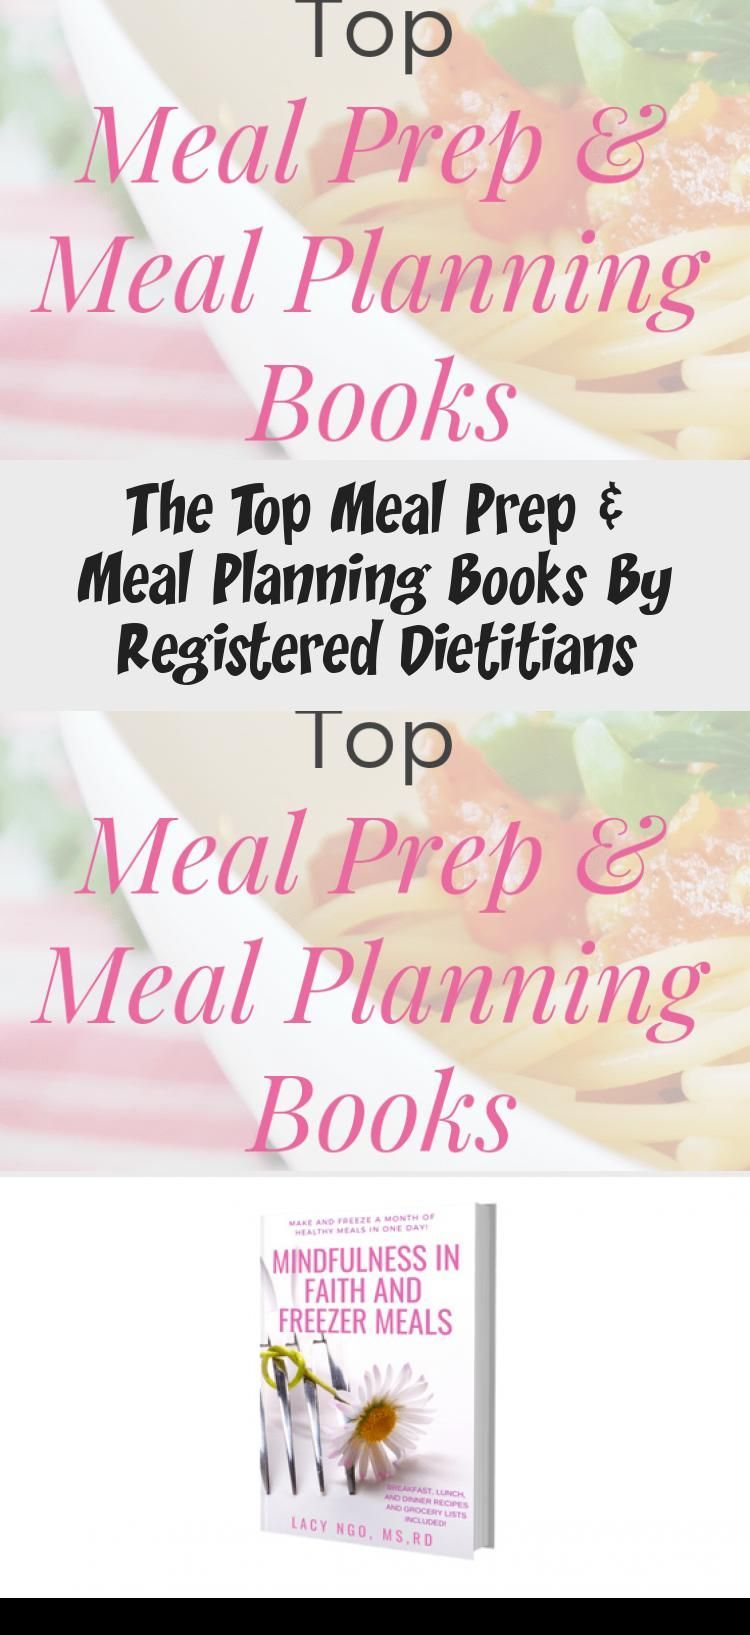 Top healthy meal prep adn meal planning books written by registered dietitians  Top healthy meal prep adn meal planning books written by registered dietitians